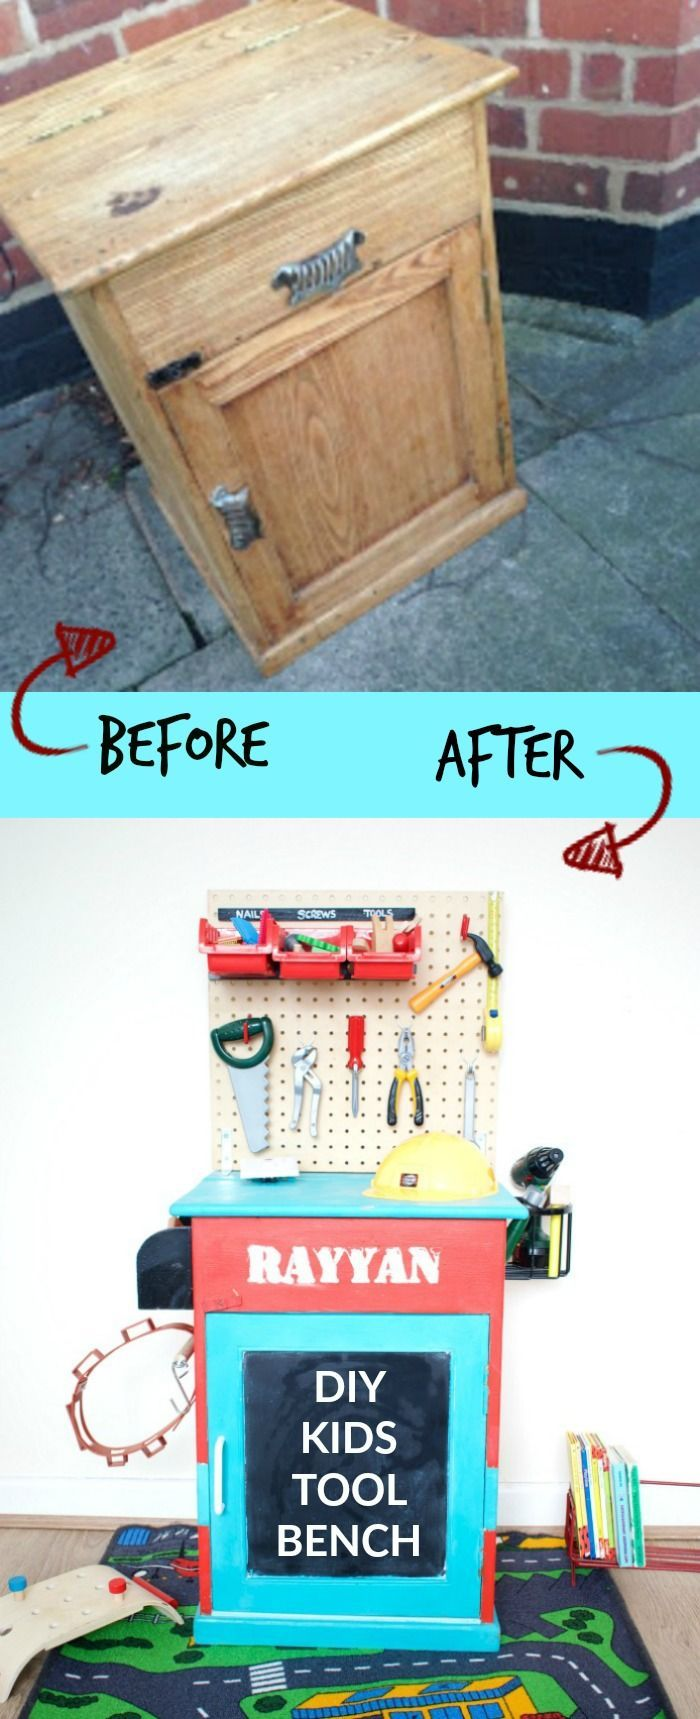 I upcycled an old wooden cabinet to make this DIY kids tool bench for my soon. He absolutely loves it. Find out how I did it here!